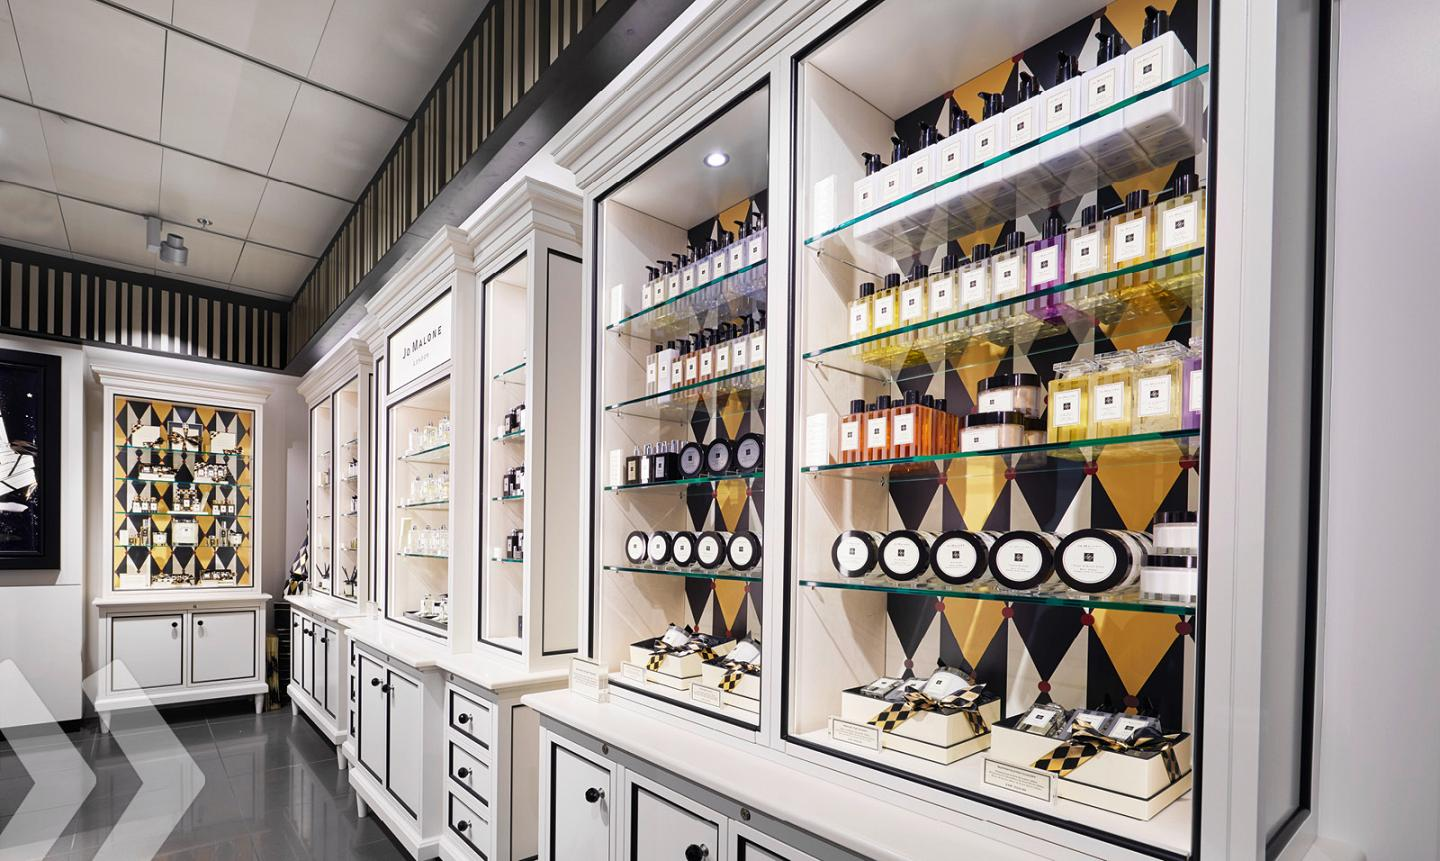 Jo Malone Shop in Shop made by ARNO 02